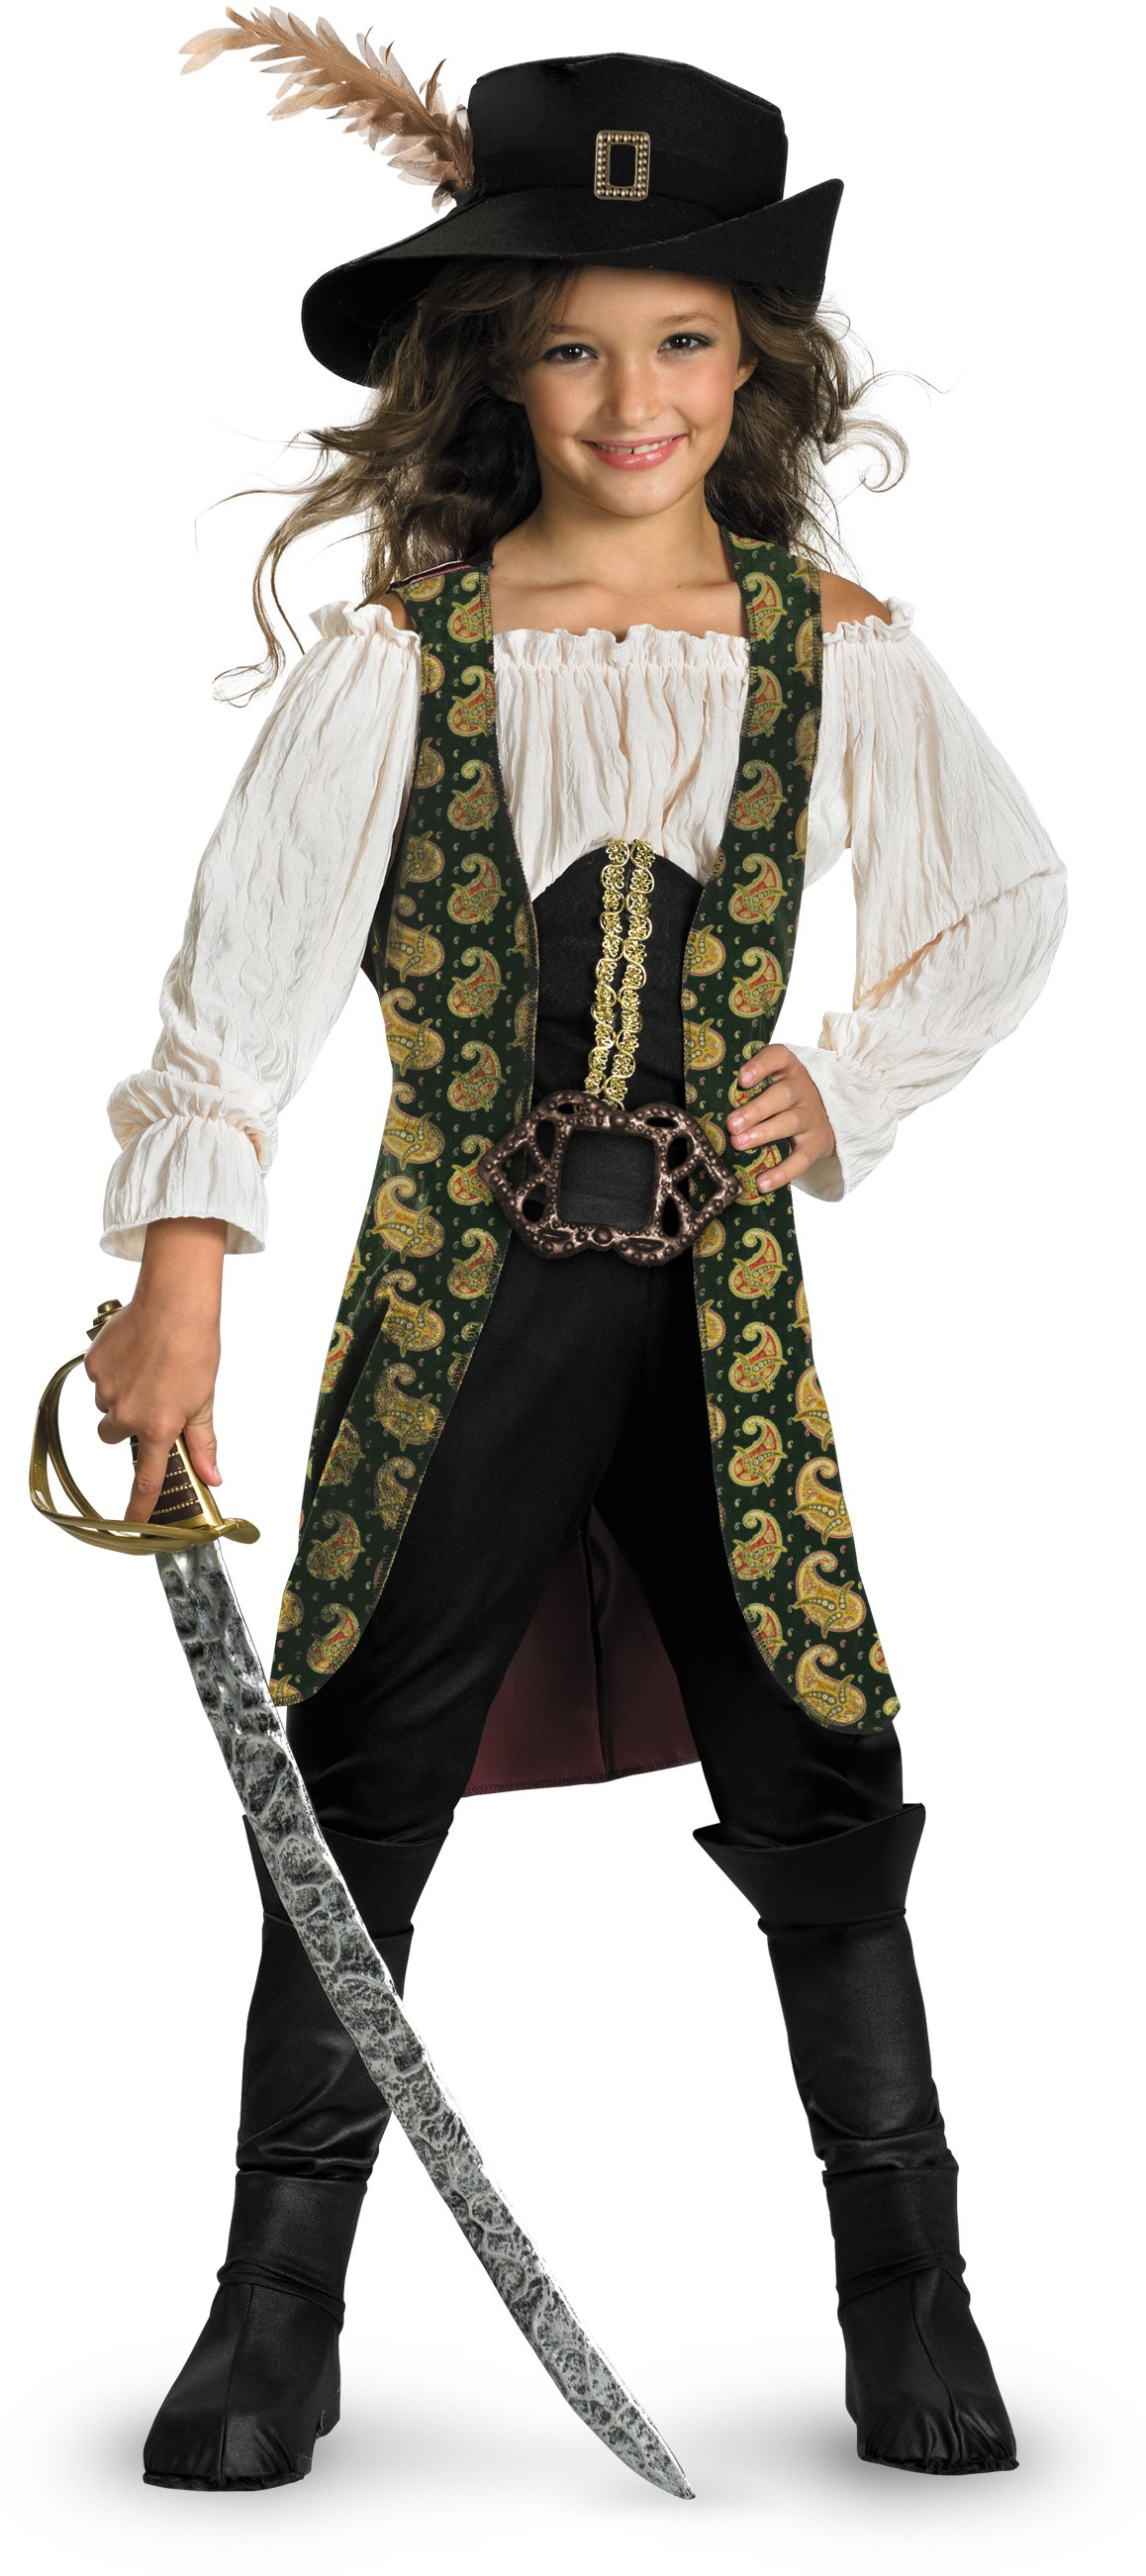 Pirates of the Caribbean 4 On Stranger Tides - Angelica Deluxe Child Costume Small (4/6x)